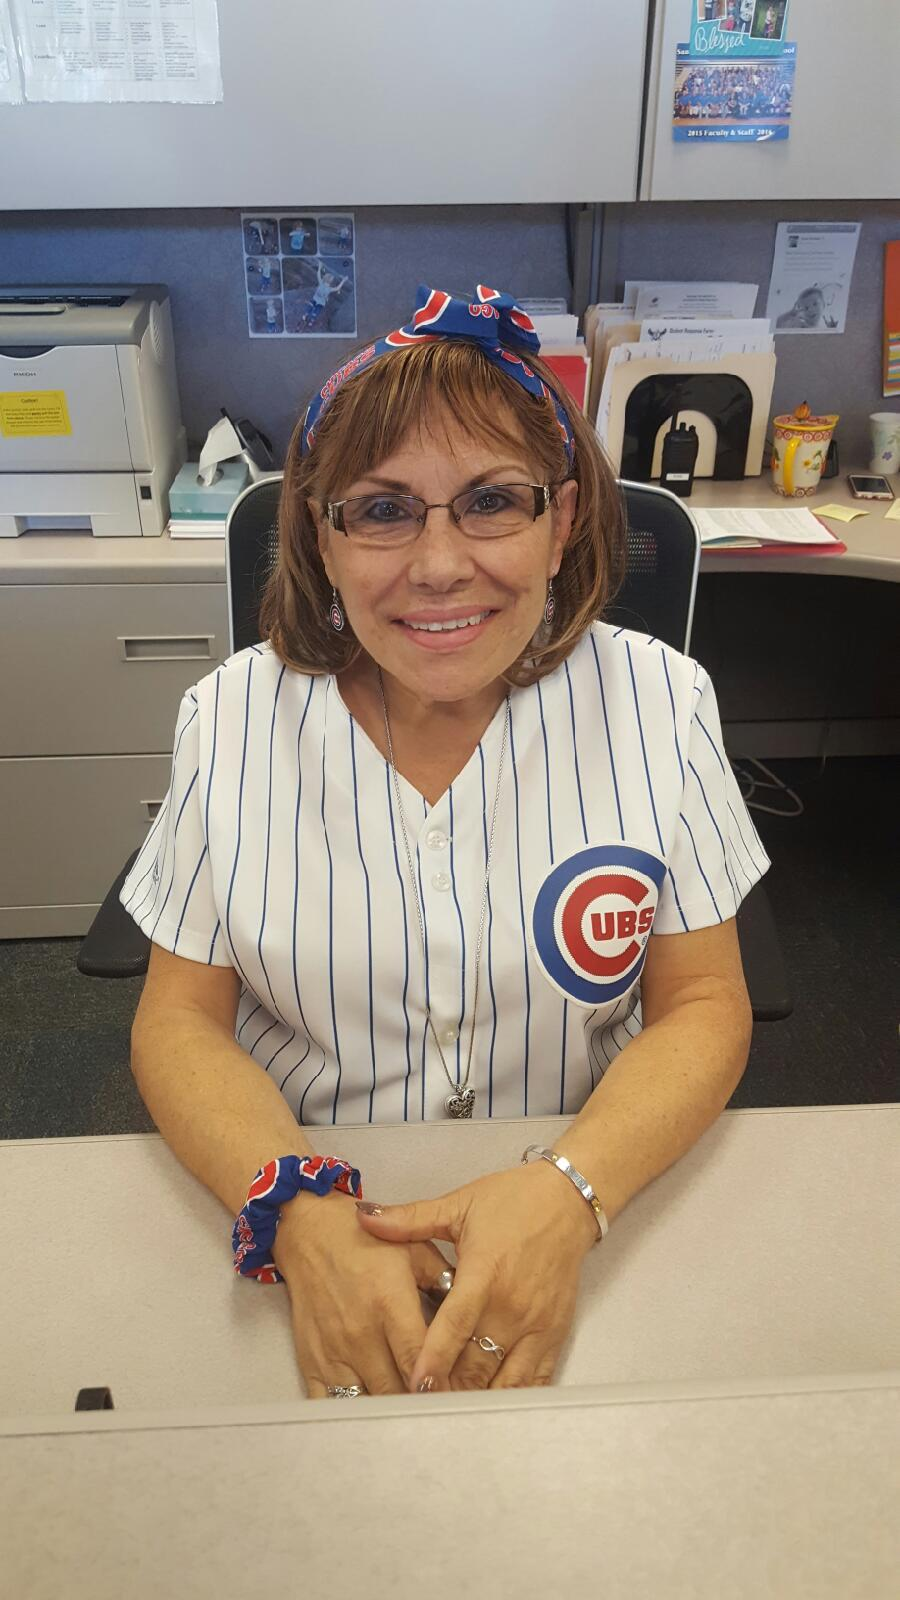 Rosa Leptich, conduct secretary, dresses up in her Cubs gear before game six, to root for her favorite team.